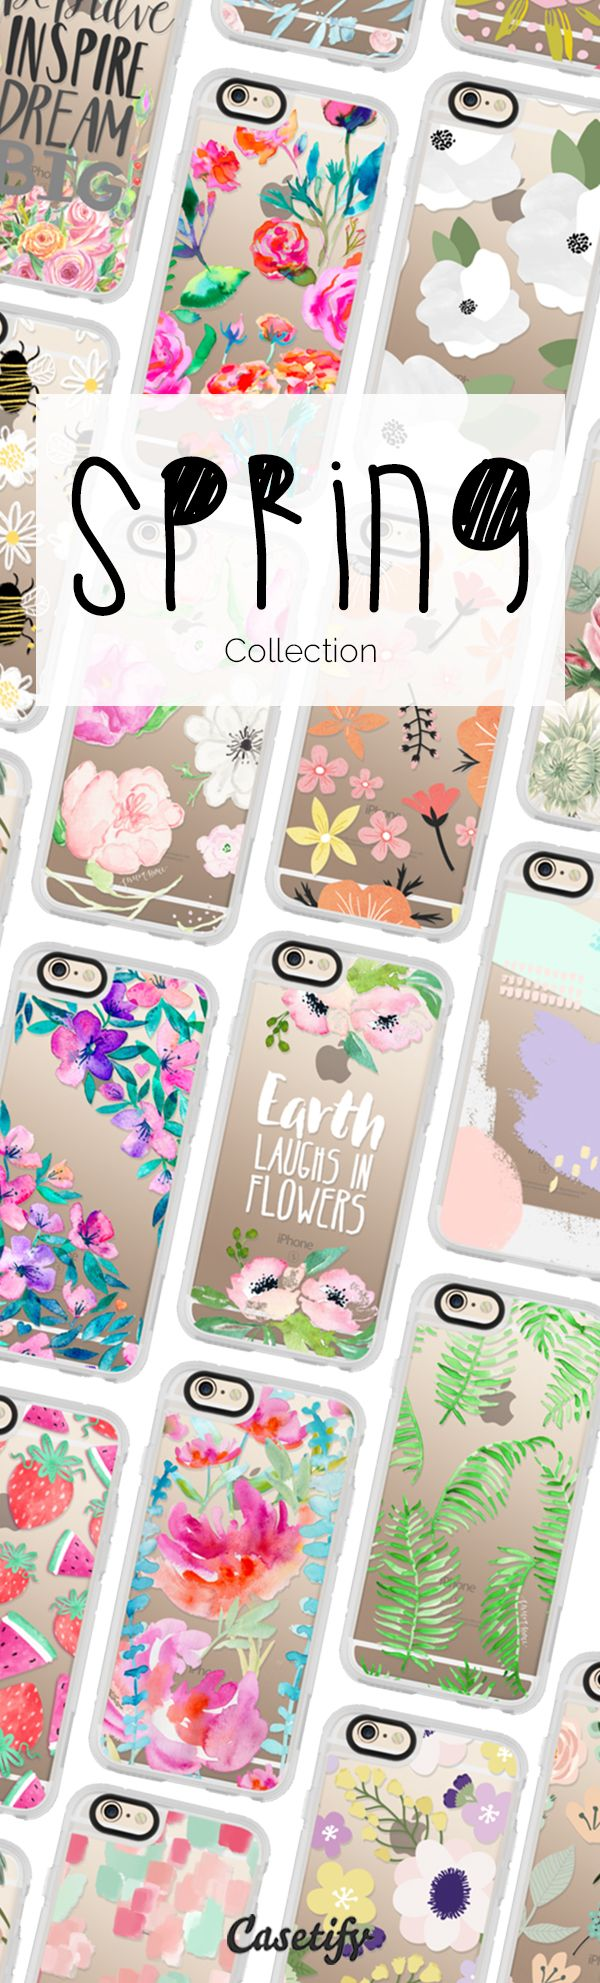 Spring Dreaming - shop these new season designs here: https://www.casetify.com/collections/spring#/